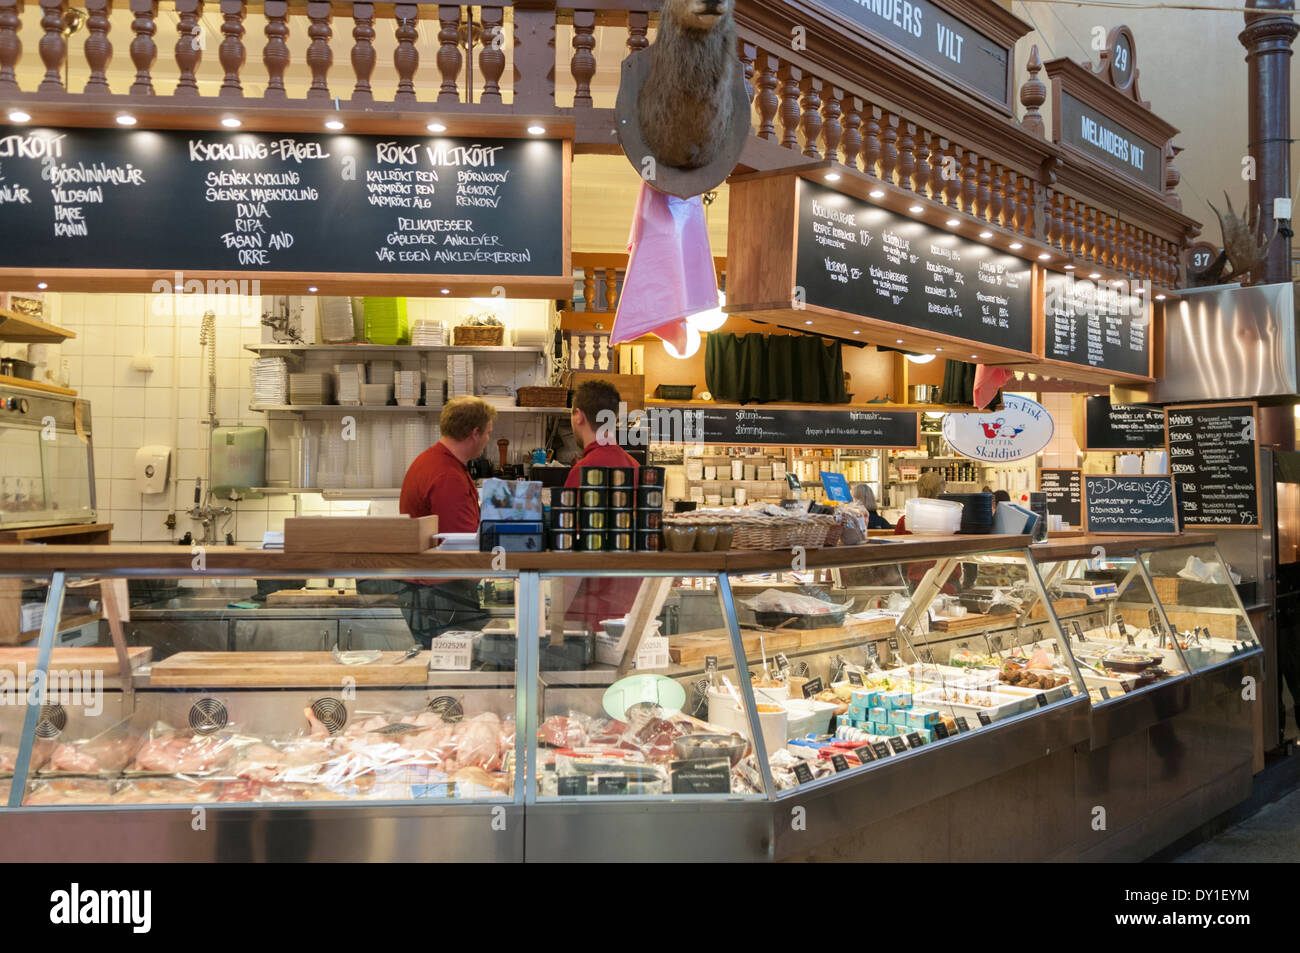 Ostermalm Food Hall Stockholm Sweden - Stock Image